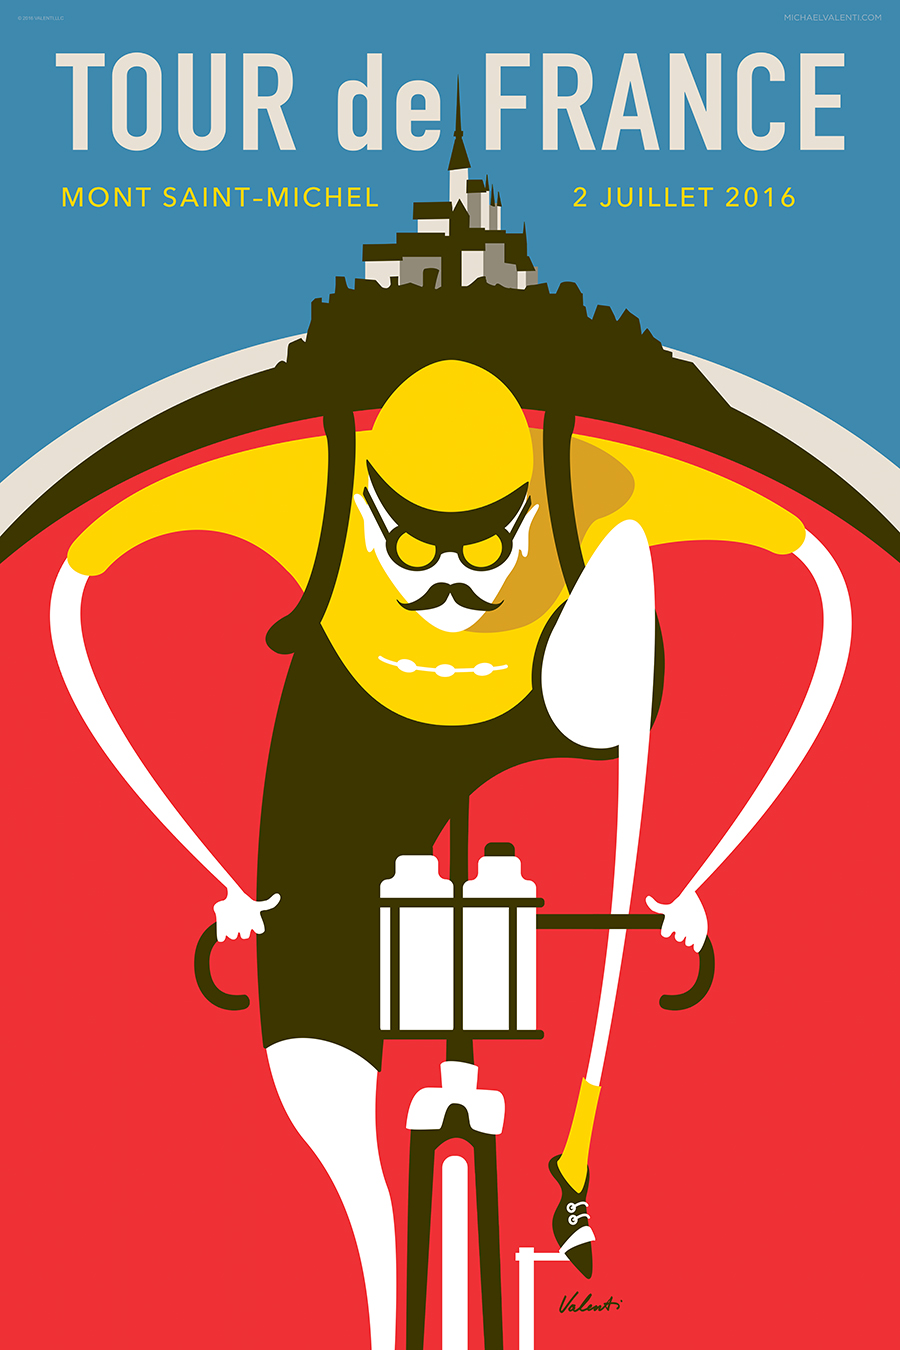 Tour de France Saint Michel Cycling Art Print | Michael Valenti